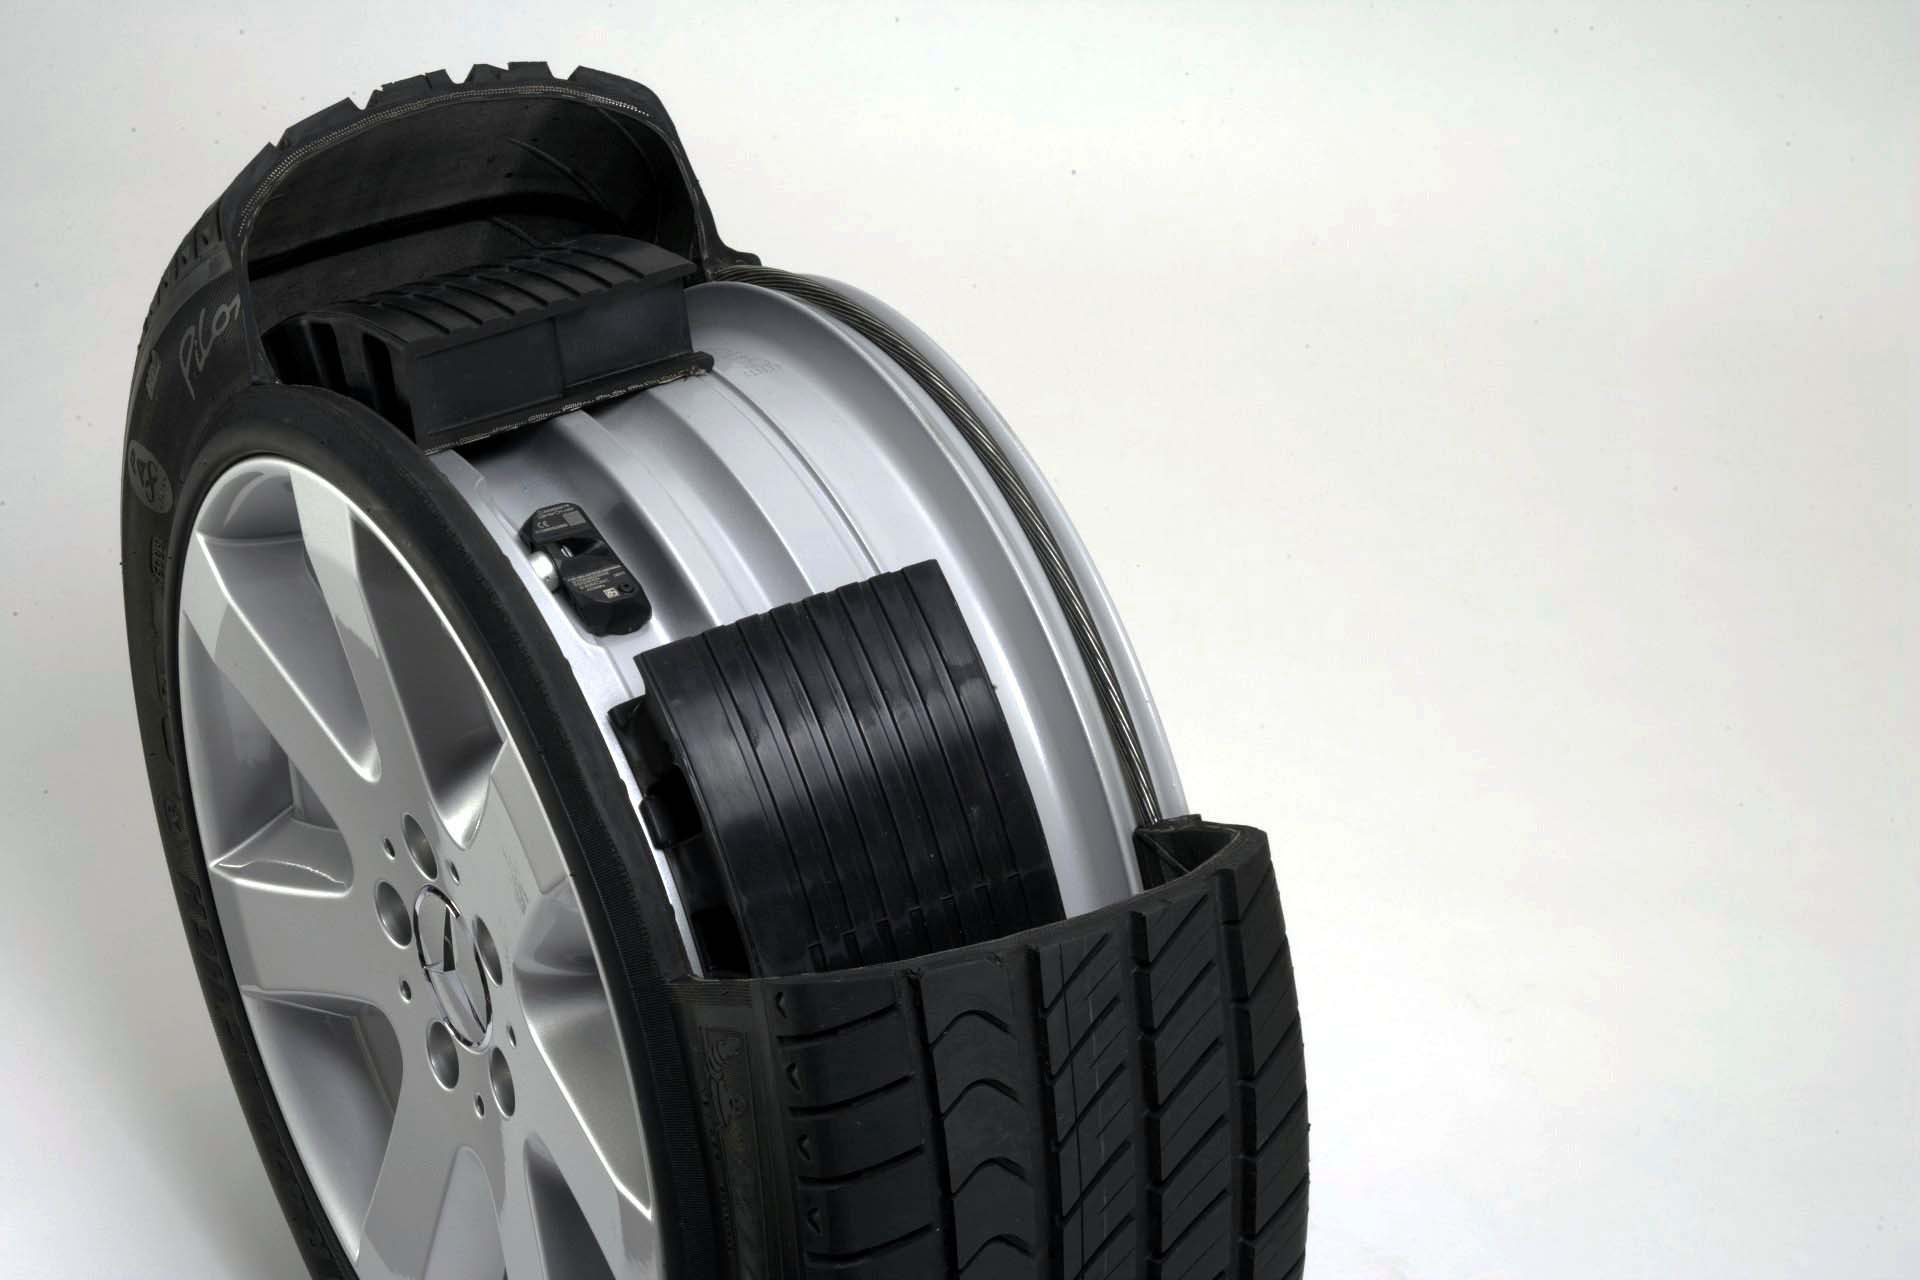 With run-flats, you can drive a limited distance at a limited speed after a loss of air, enabling you to limp your ride to a repair shop for a new tire, without having to install a spare. In this photo, we get a peek inside of a Bridgestone run-flat tire, and can see the support ring structure that holds the tire up if air is lost. Unfortunately, run-flats come with certain trade-offs, like a stiffer and noisier ride and higher replacement costs, while still being susceptible to sidewall flats.<br />